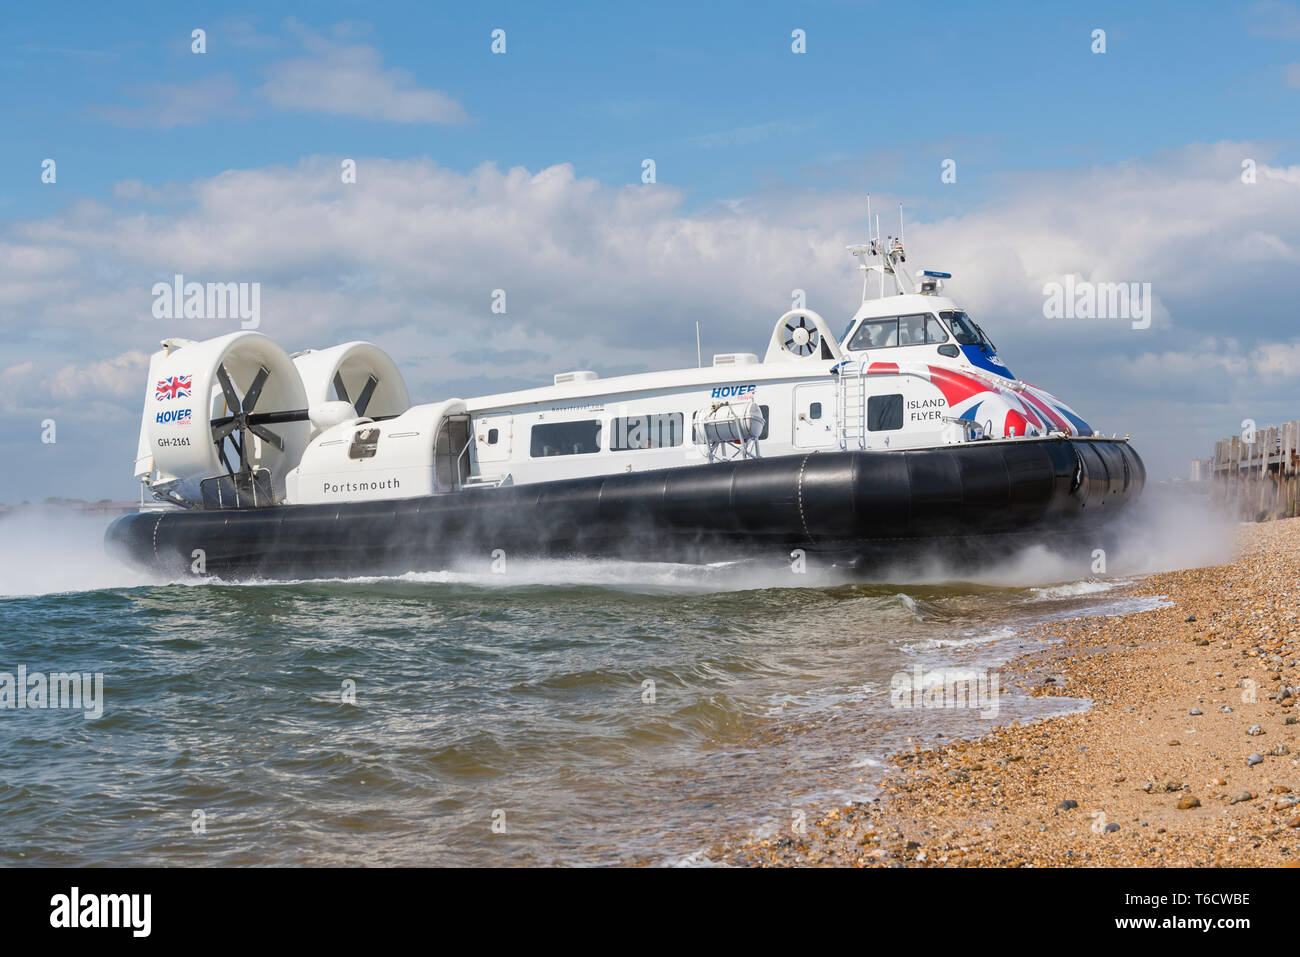 Island Flyer, a Griffon Hoverwork 12000TD hovercraft from Hovertravel on the Solent sea, landing on the beach Southsea in Hampshire, England, UK. - Stock Image